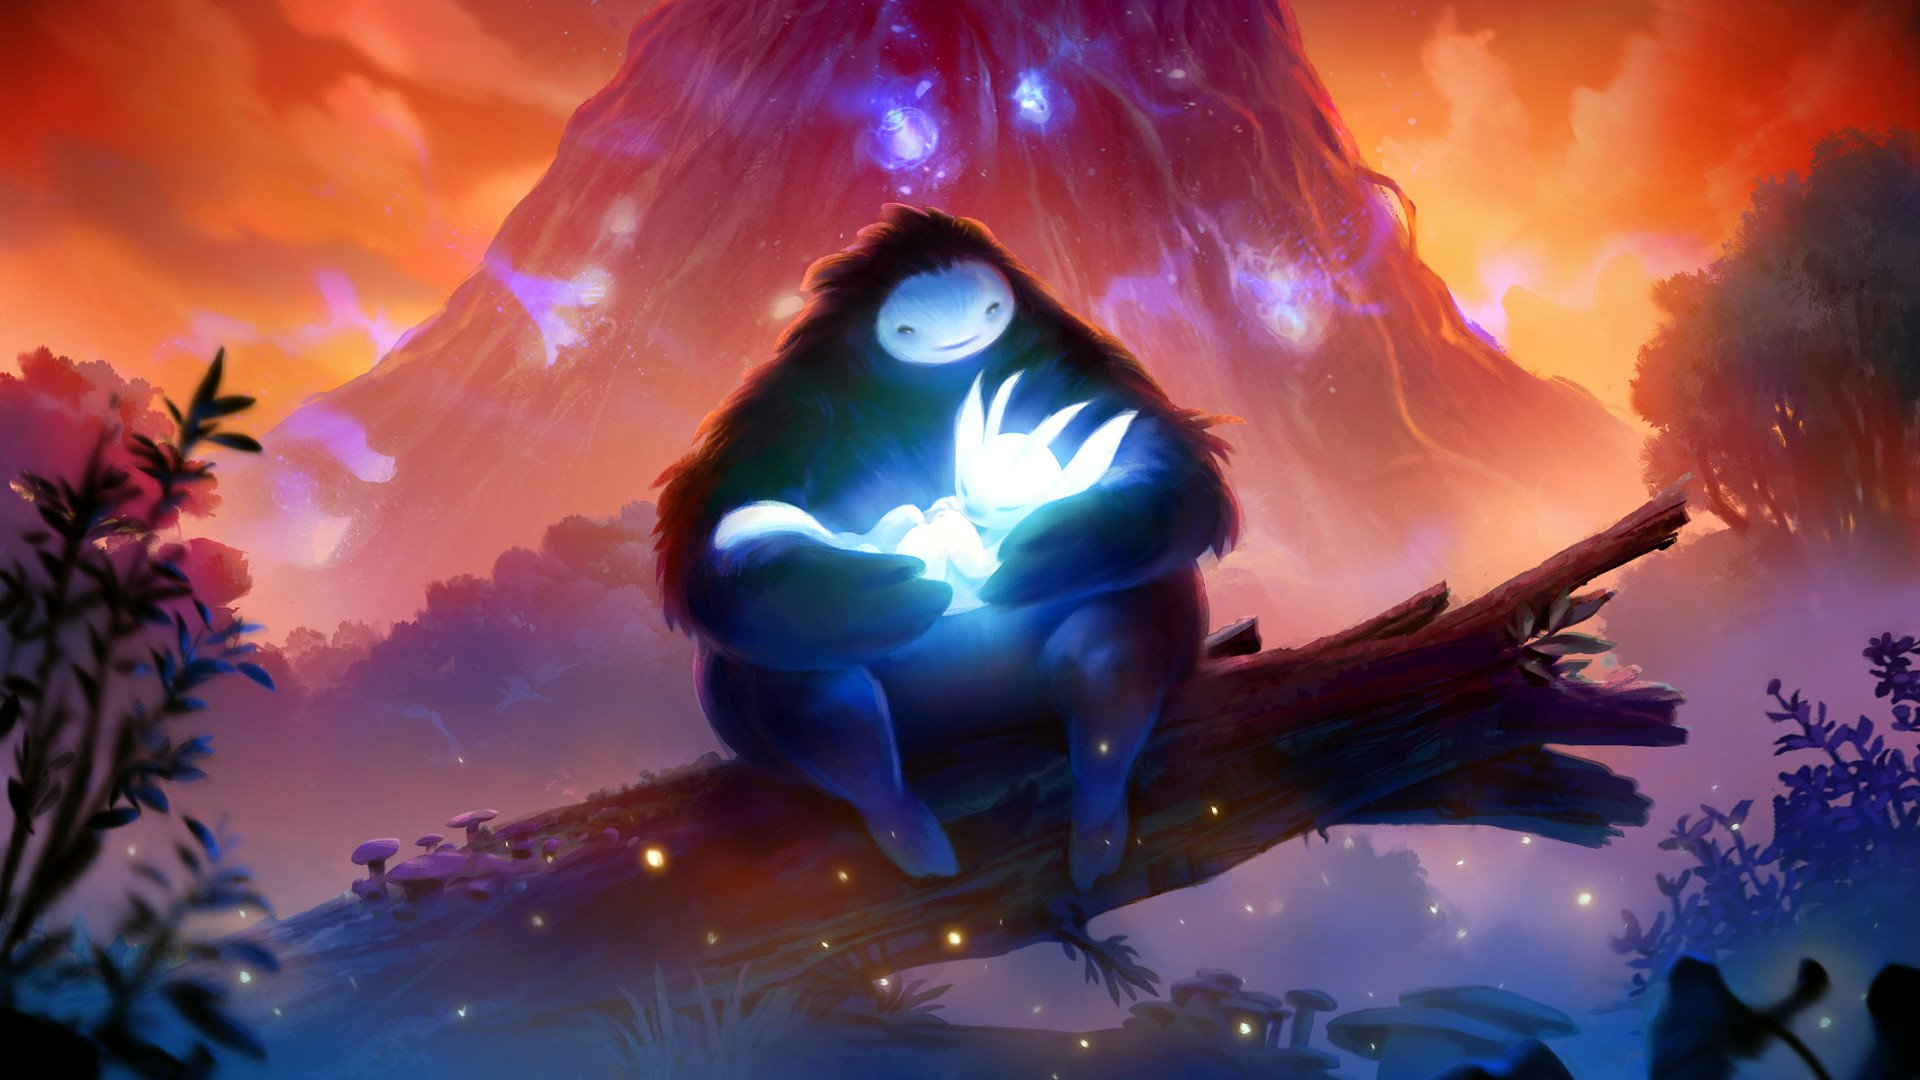 Ori And The Blind Forest Nintendo Switch Version Releases